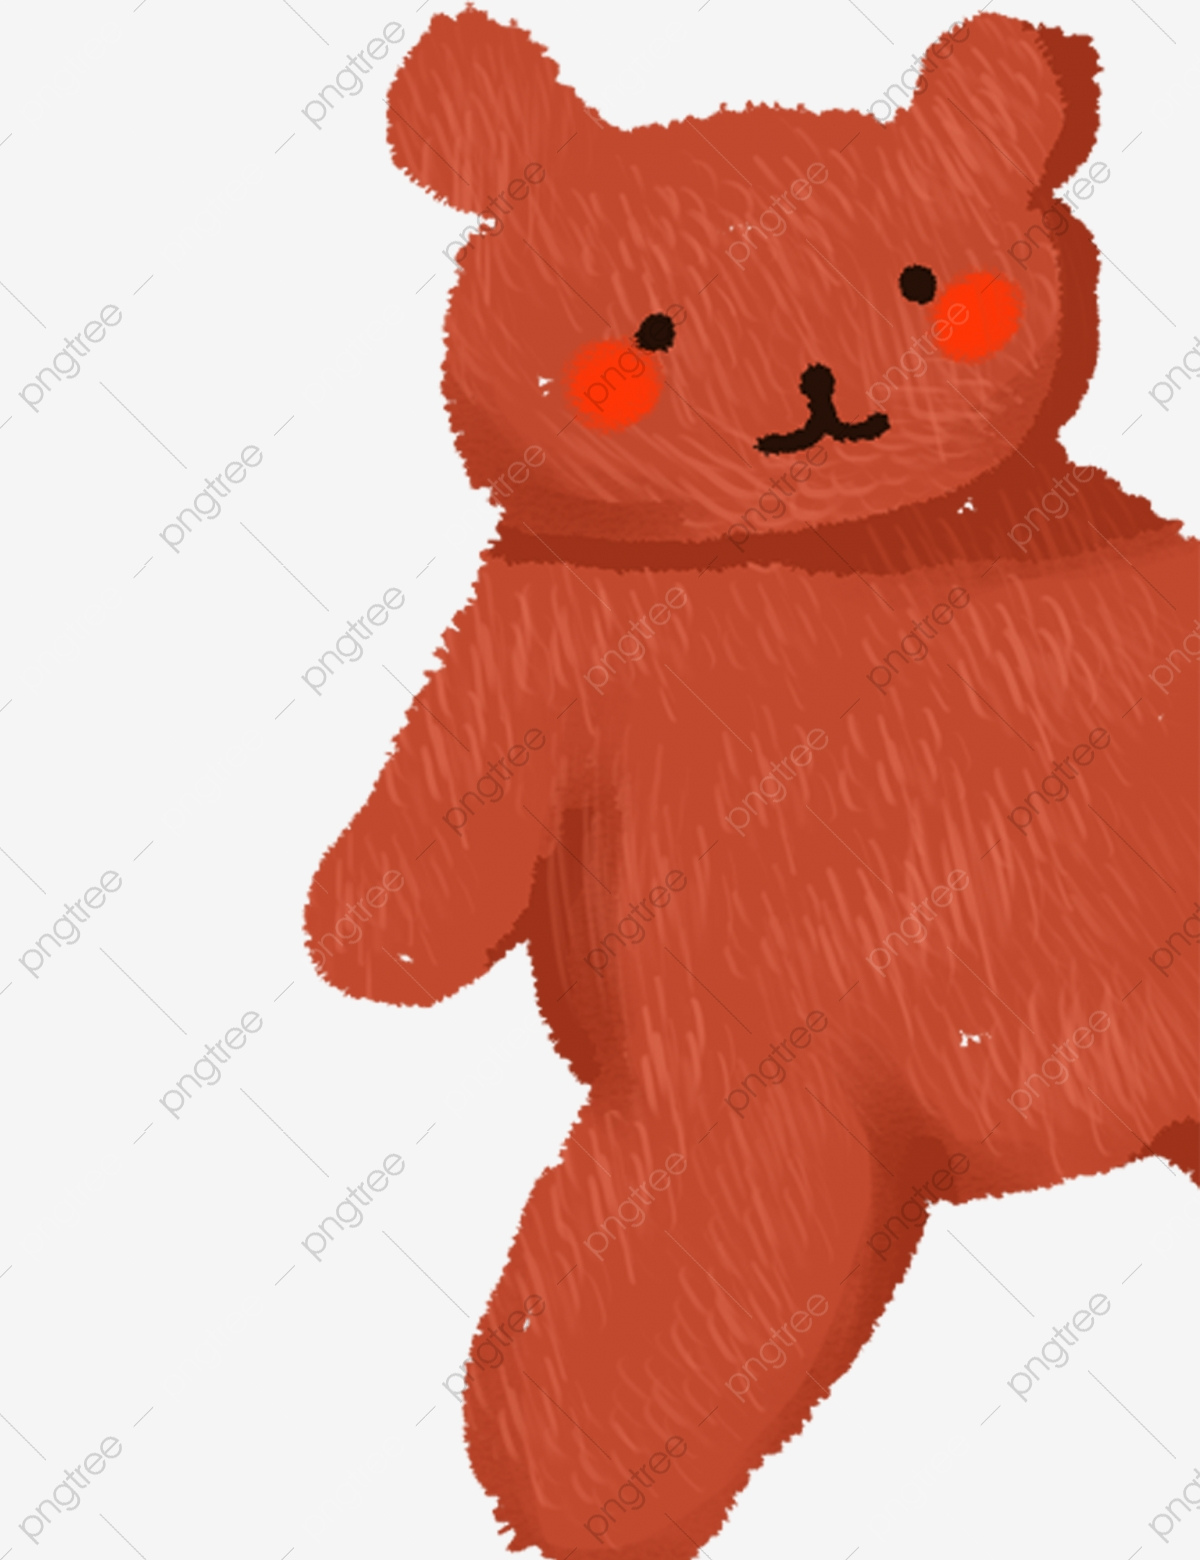 Bear Doll Vector PSD And Clipart With Transparent